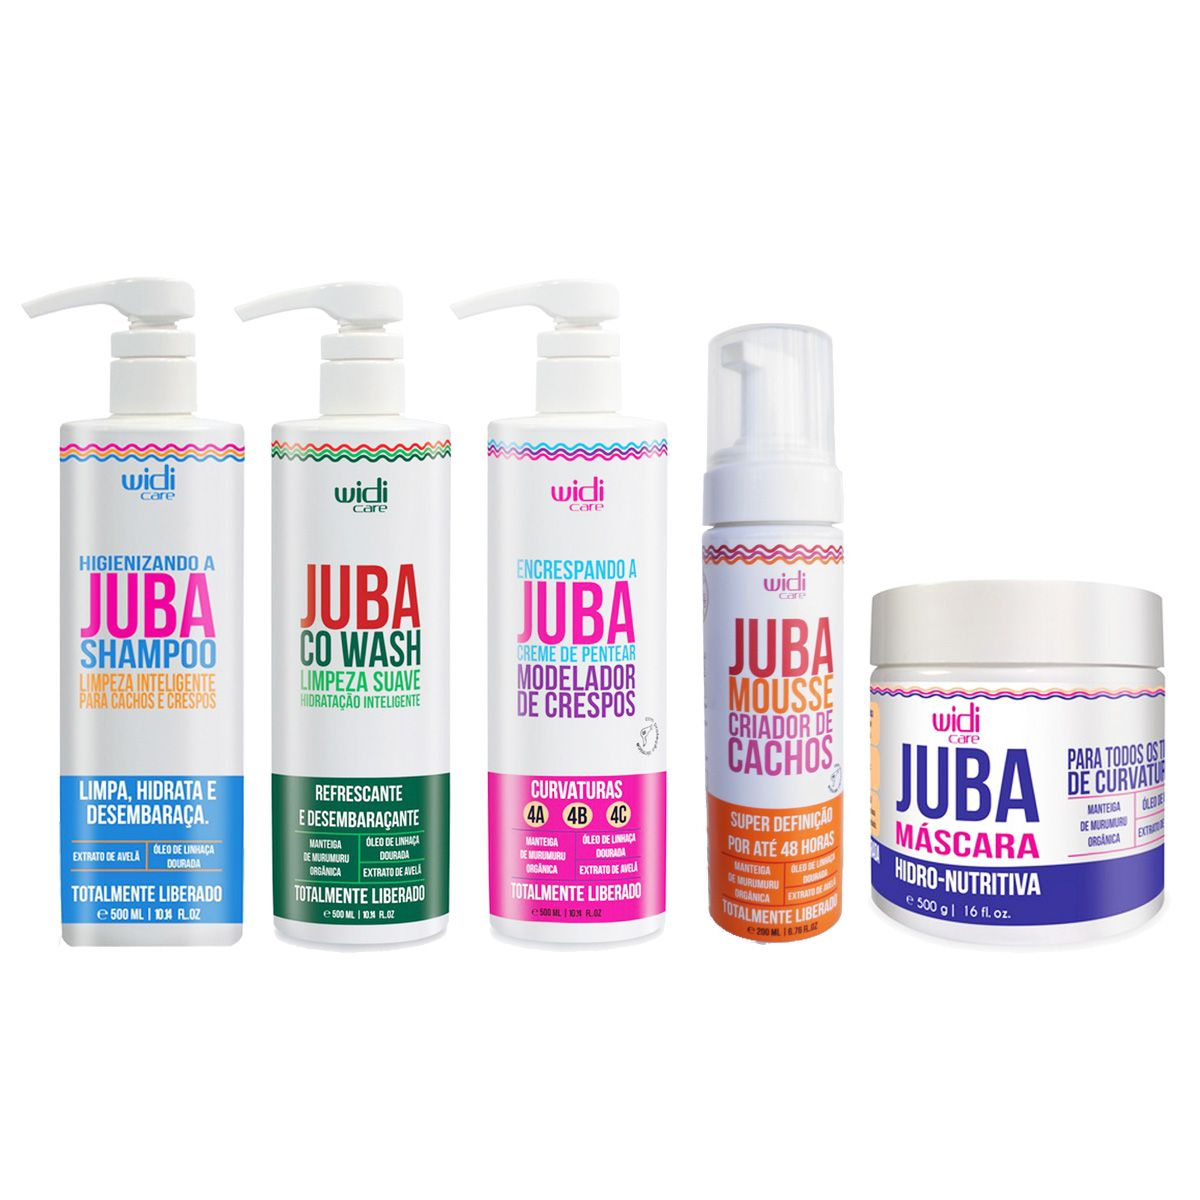 Widi Care - Juba - Kit completo Encrespando